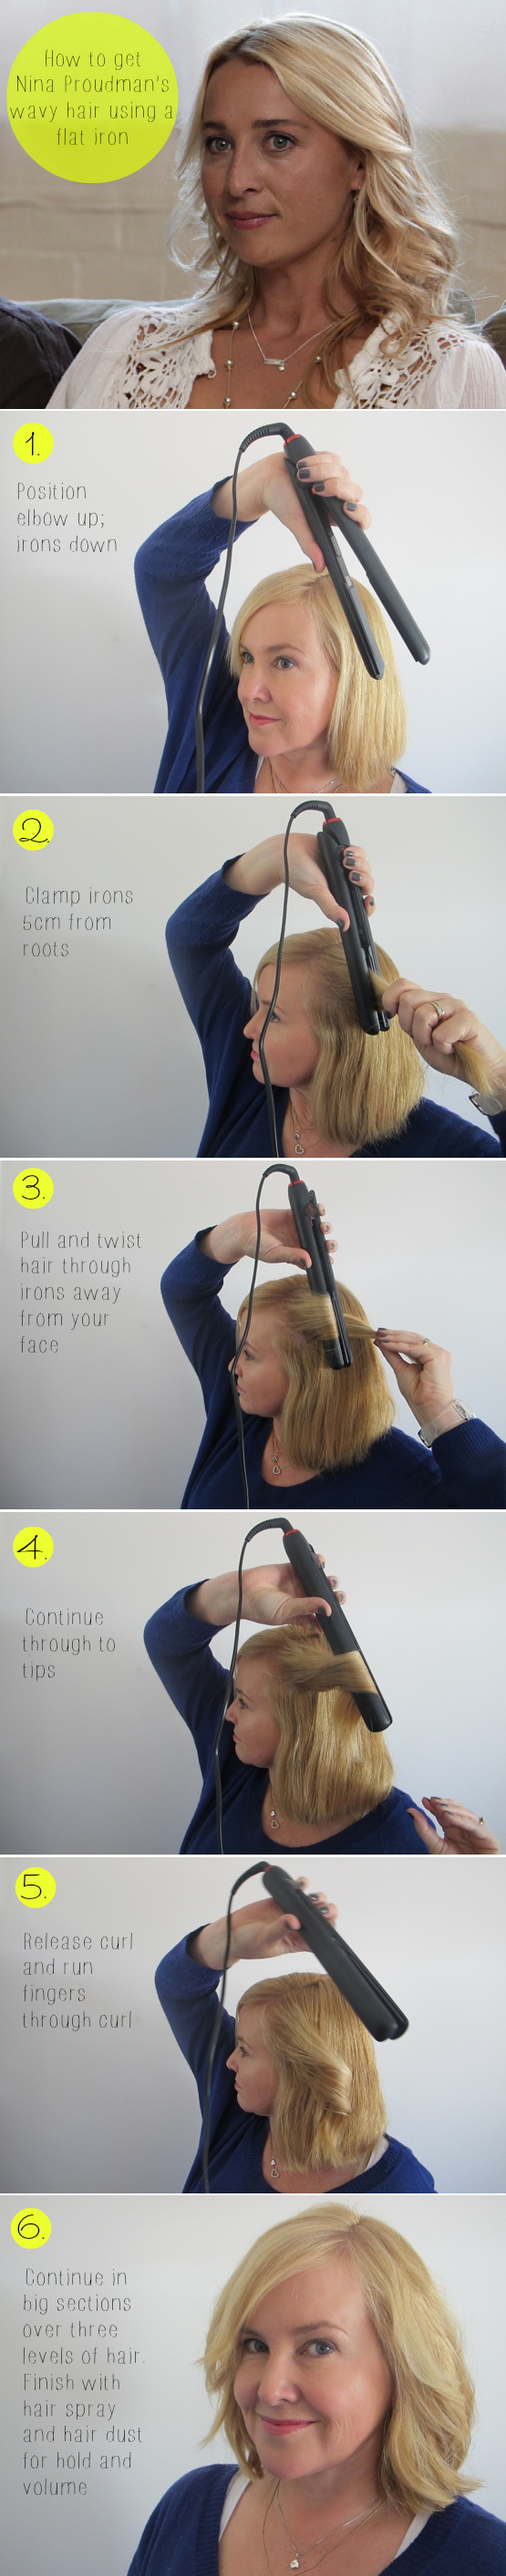 Hairstyles for Long Hair Step by Step-11